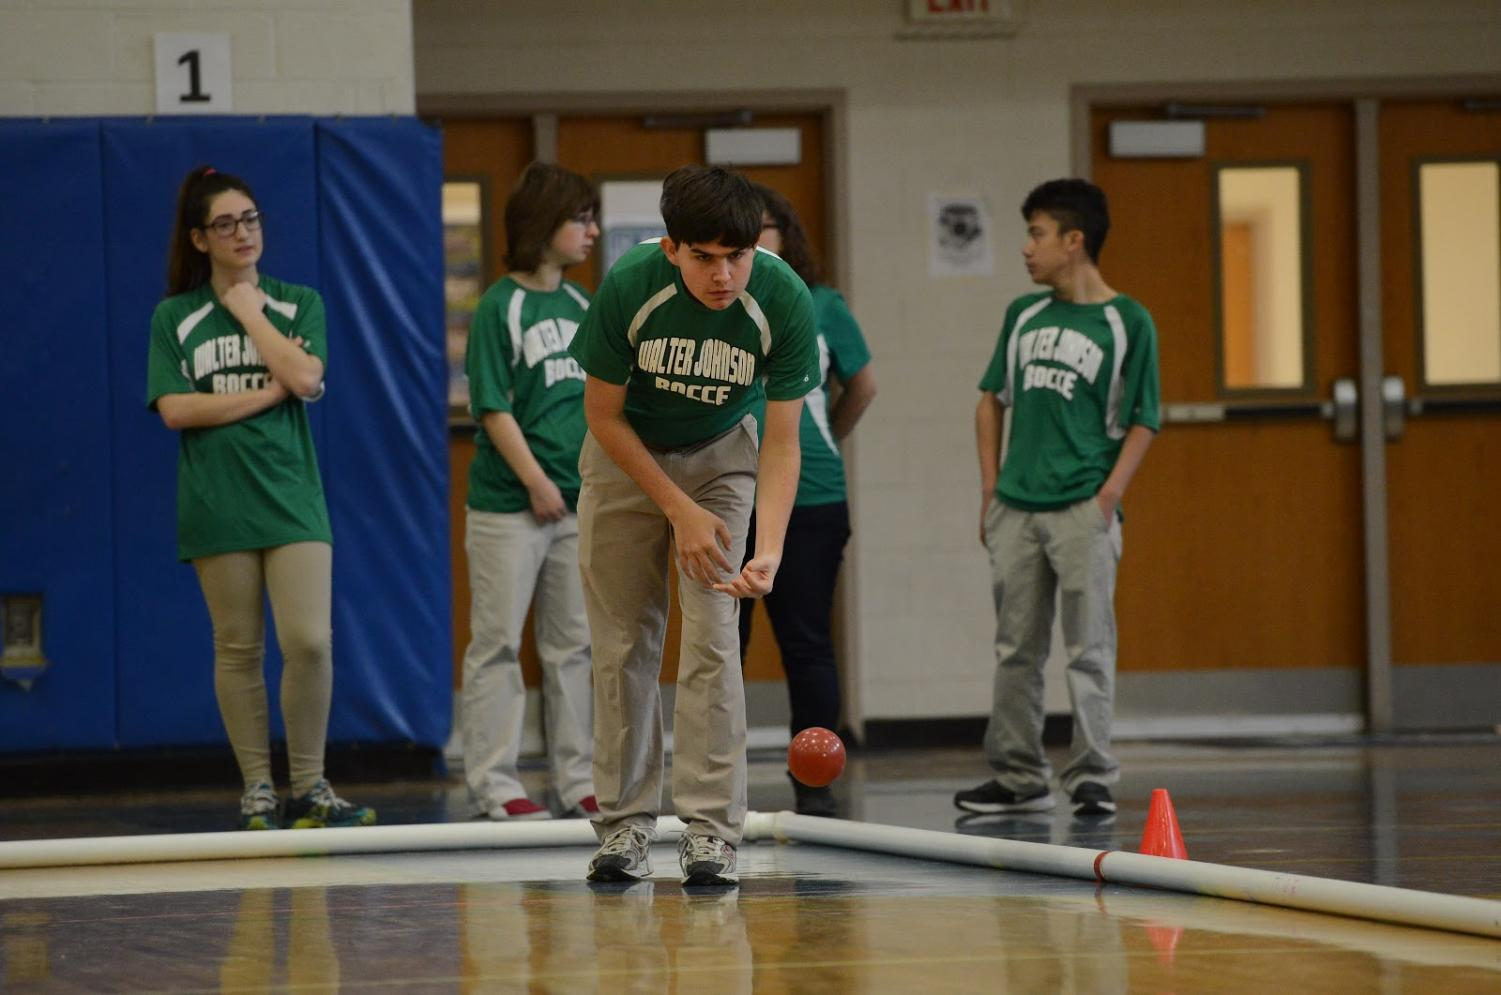 Junior Justin Zimmer pitches the bocce ball. Photo courtesy of Lifetouch.